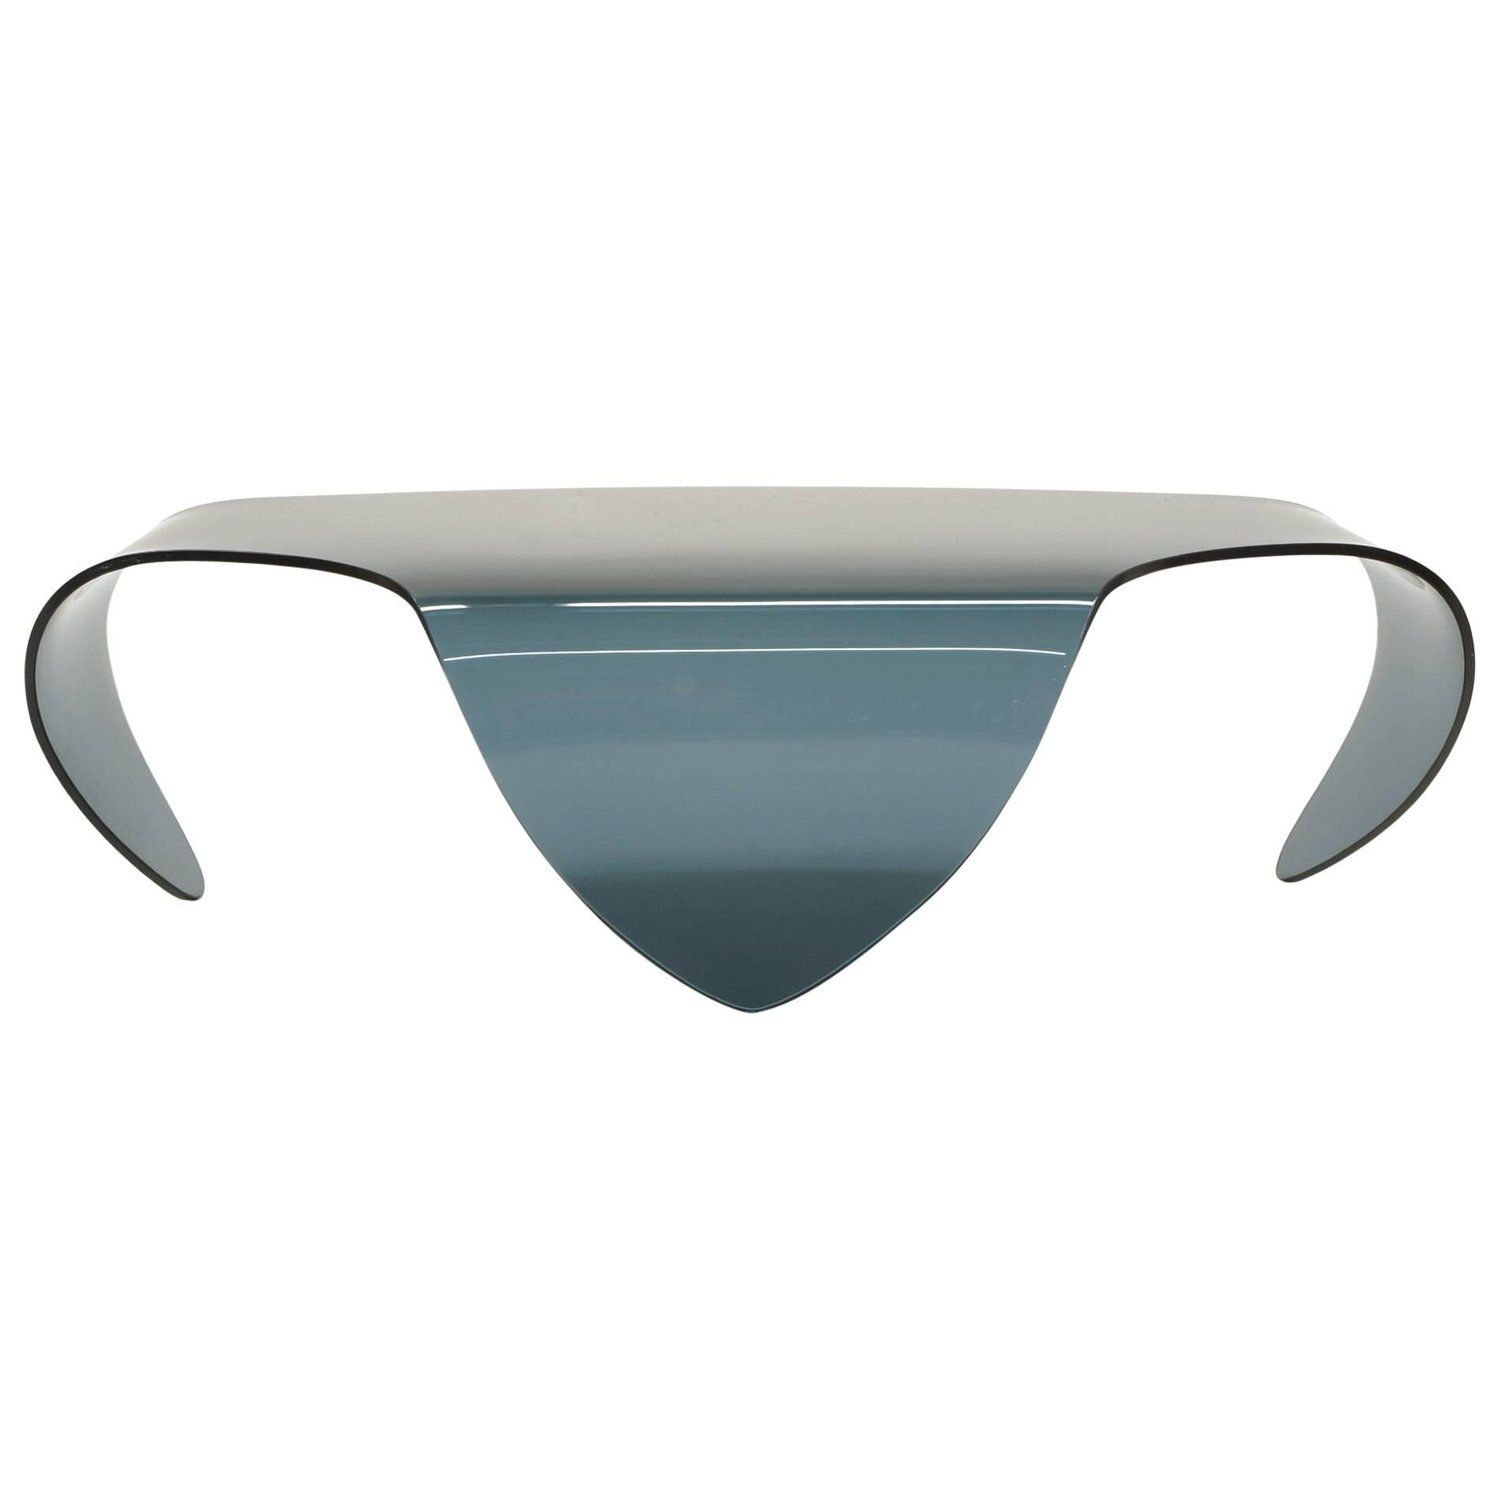 All Glass Coffee Table Biomorphic Sculptural Blue Gray Glass Form All Glass Coffee Table Grey Glass Glass Coffee Table